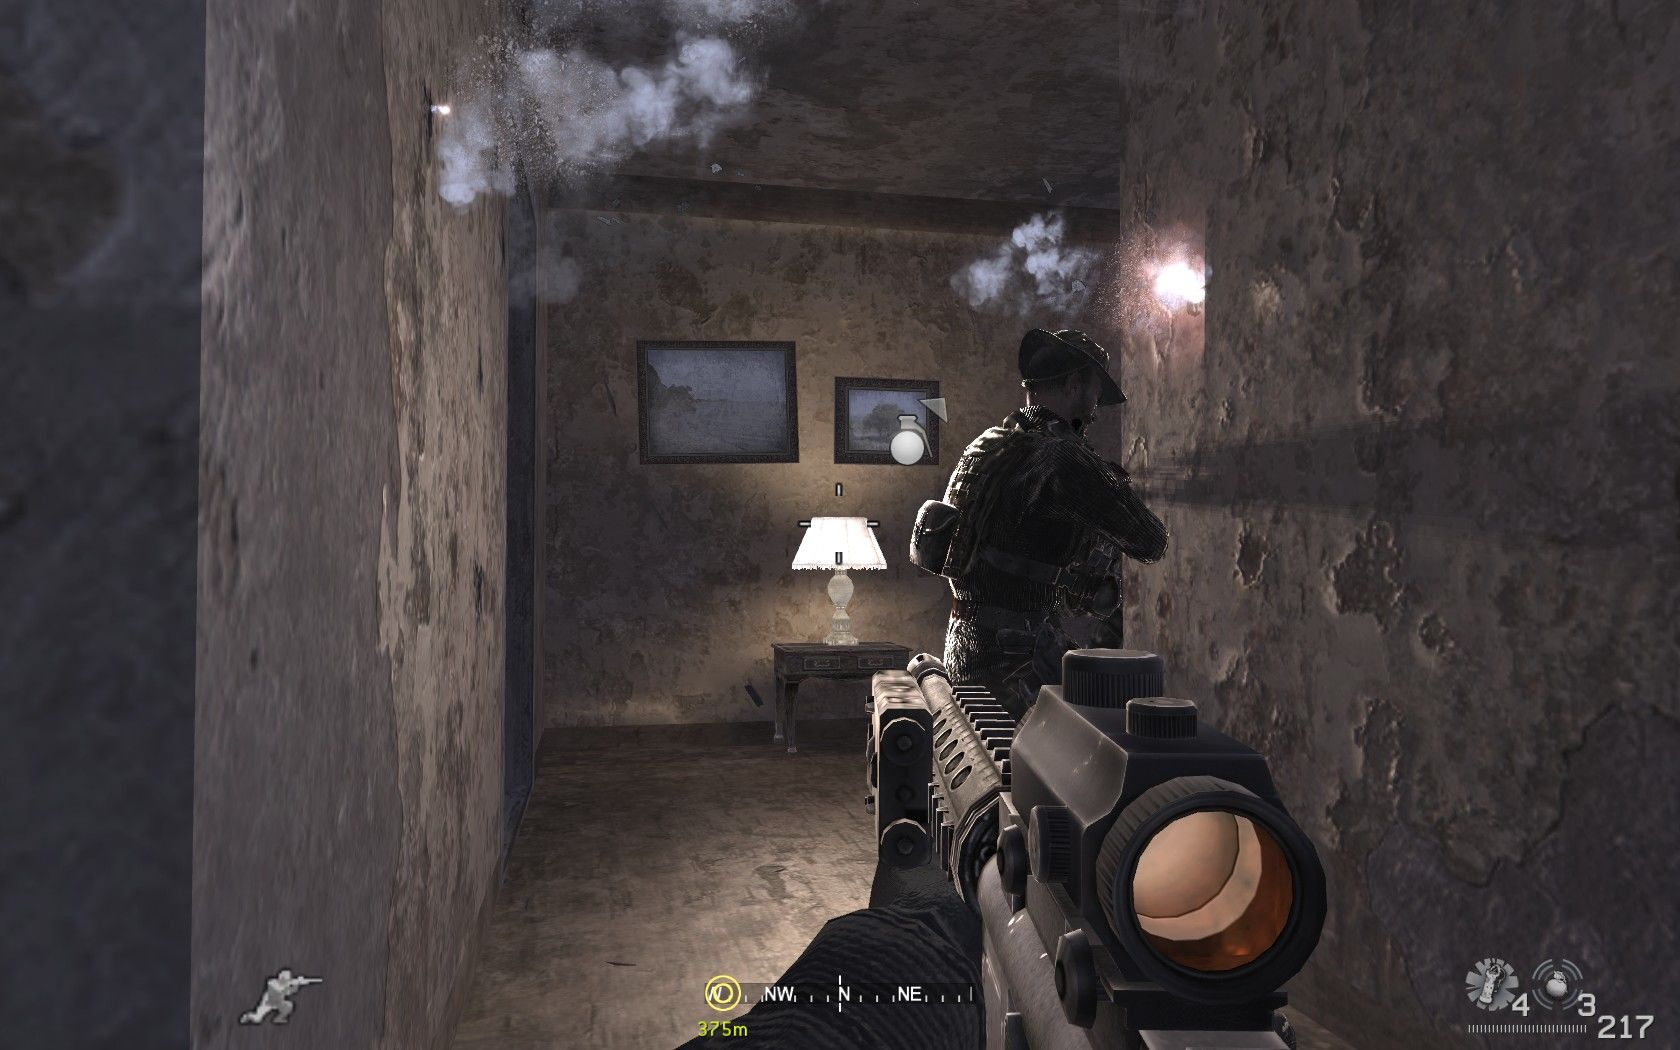 Call of Duty 4: Modern Warfare Windows Some curiosities: nearby grenades are indicated through an icon (very useful) and bullets can pass through crappy walls.